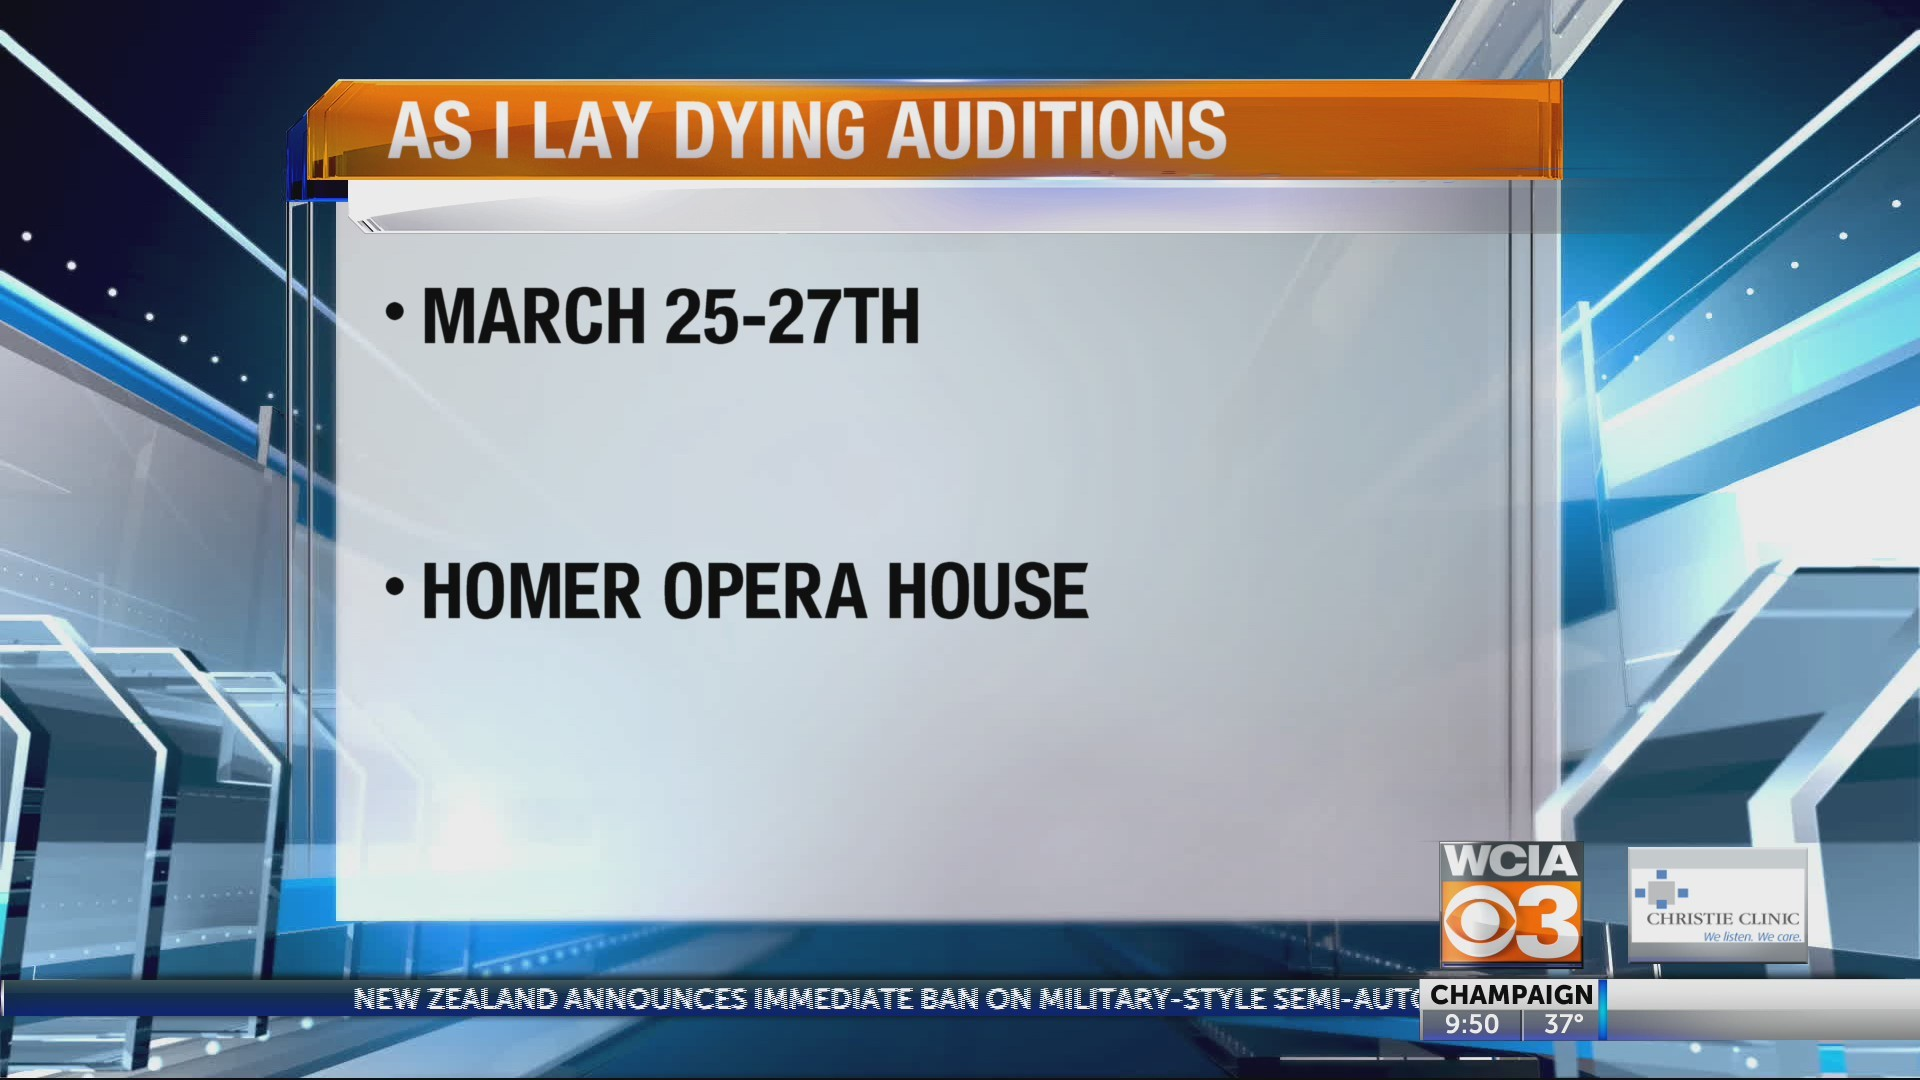 Auditions at the Homer Opera House